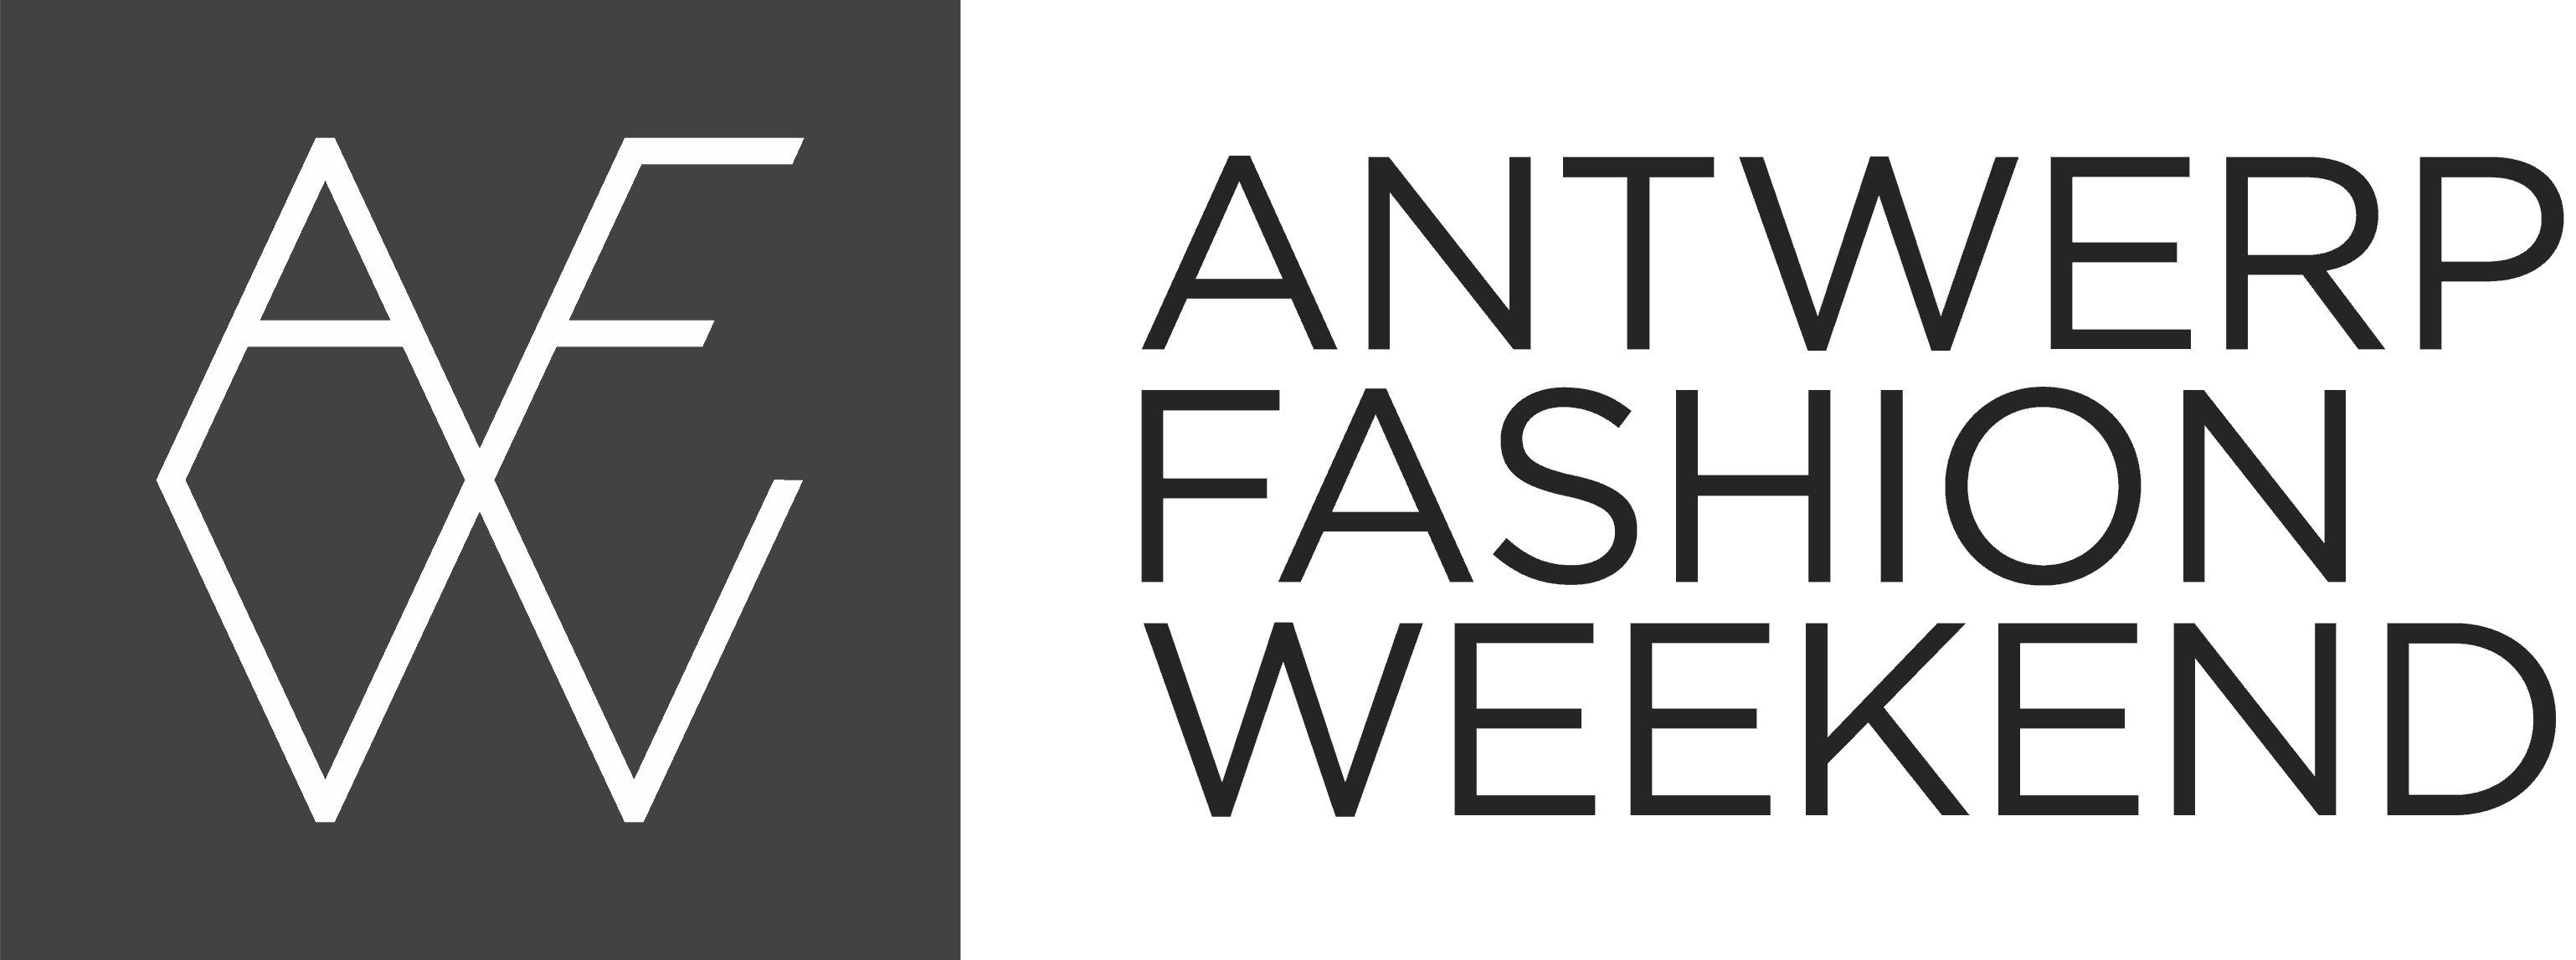 Antwerp Fashion Weekend